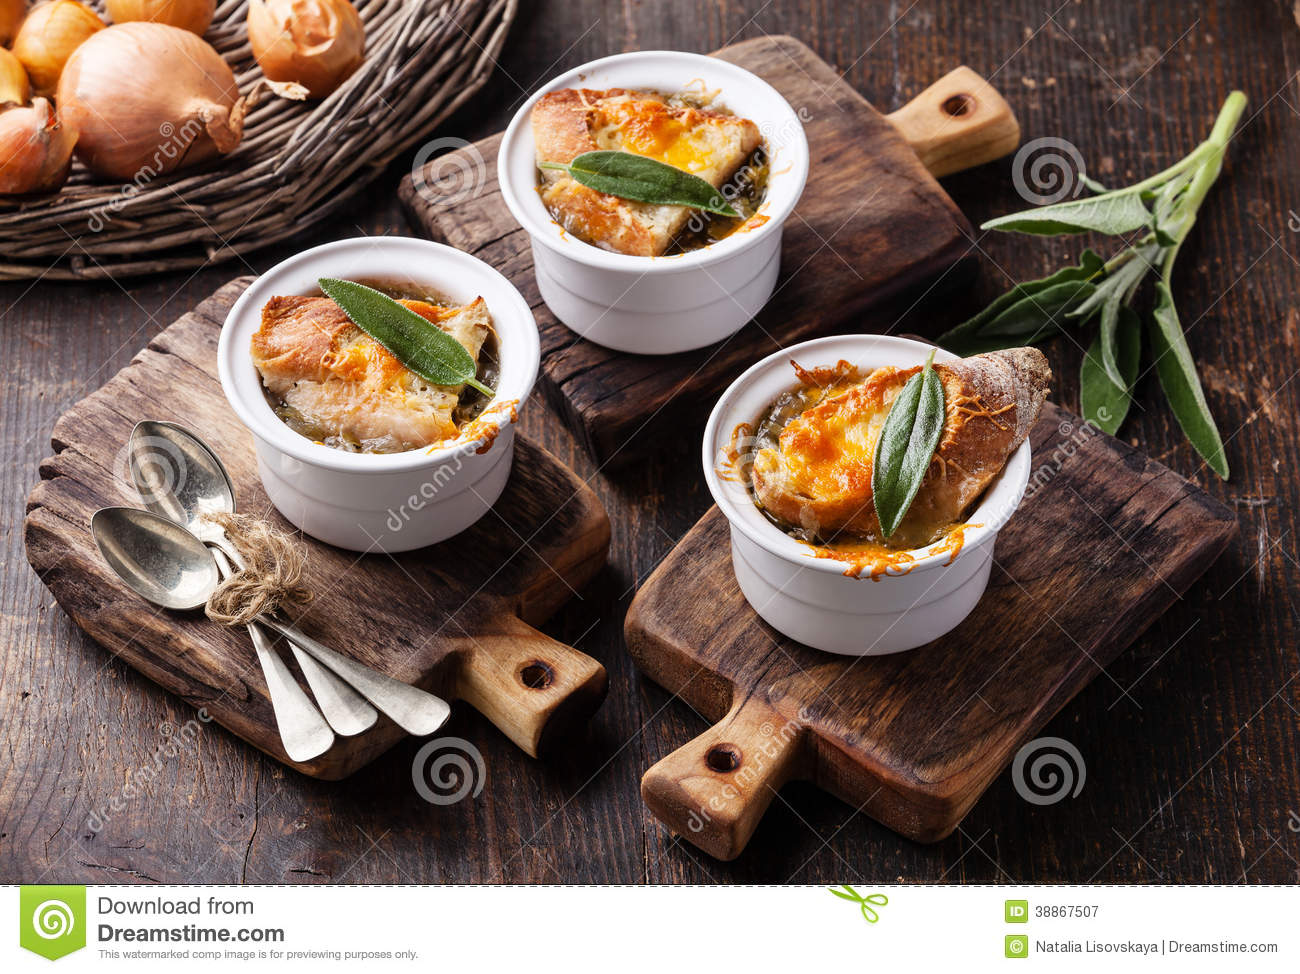 Onion Soup Stock Photo - Image: 38867507